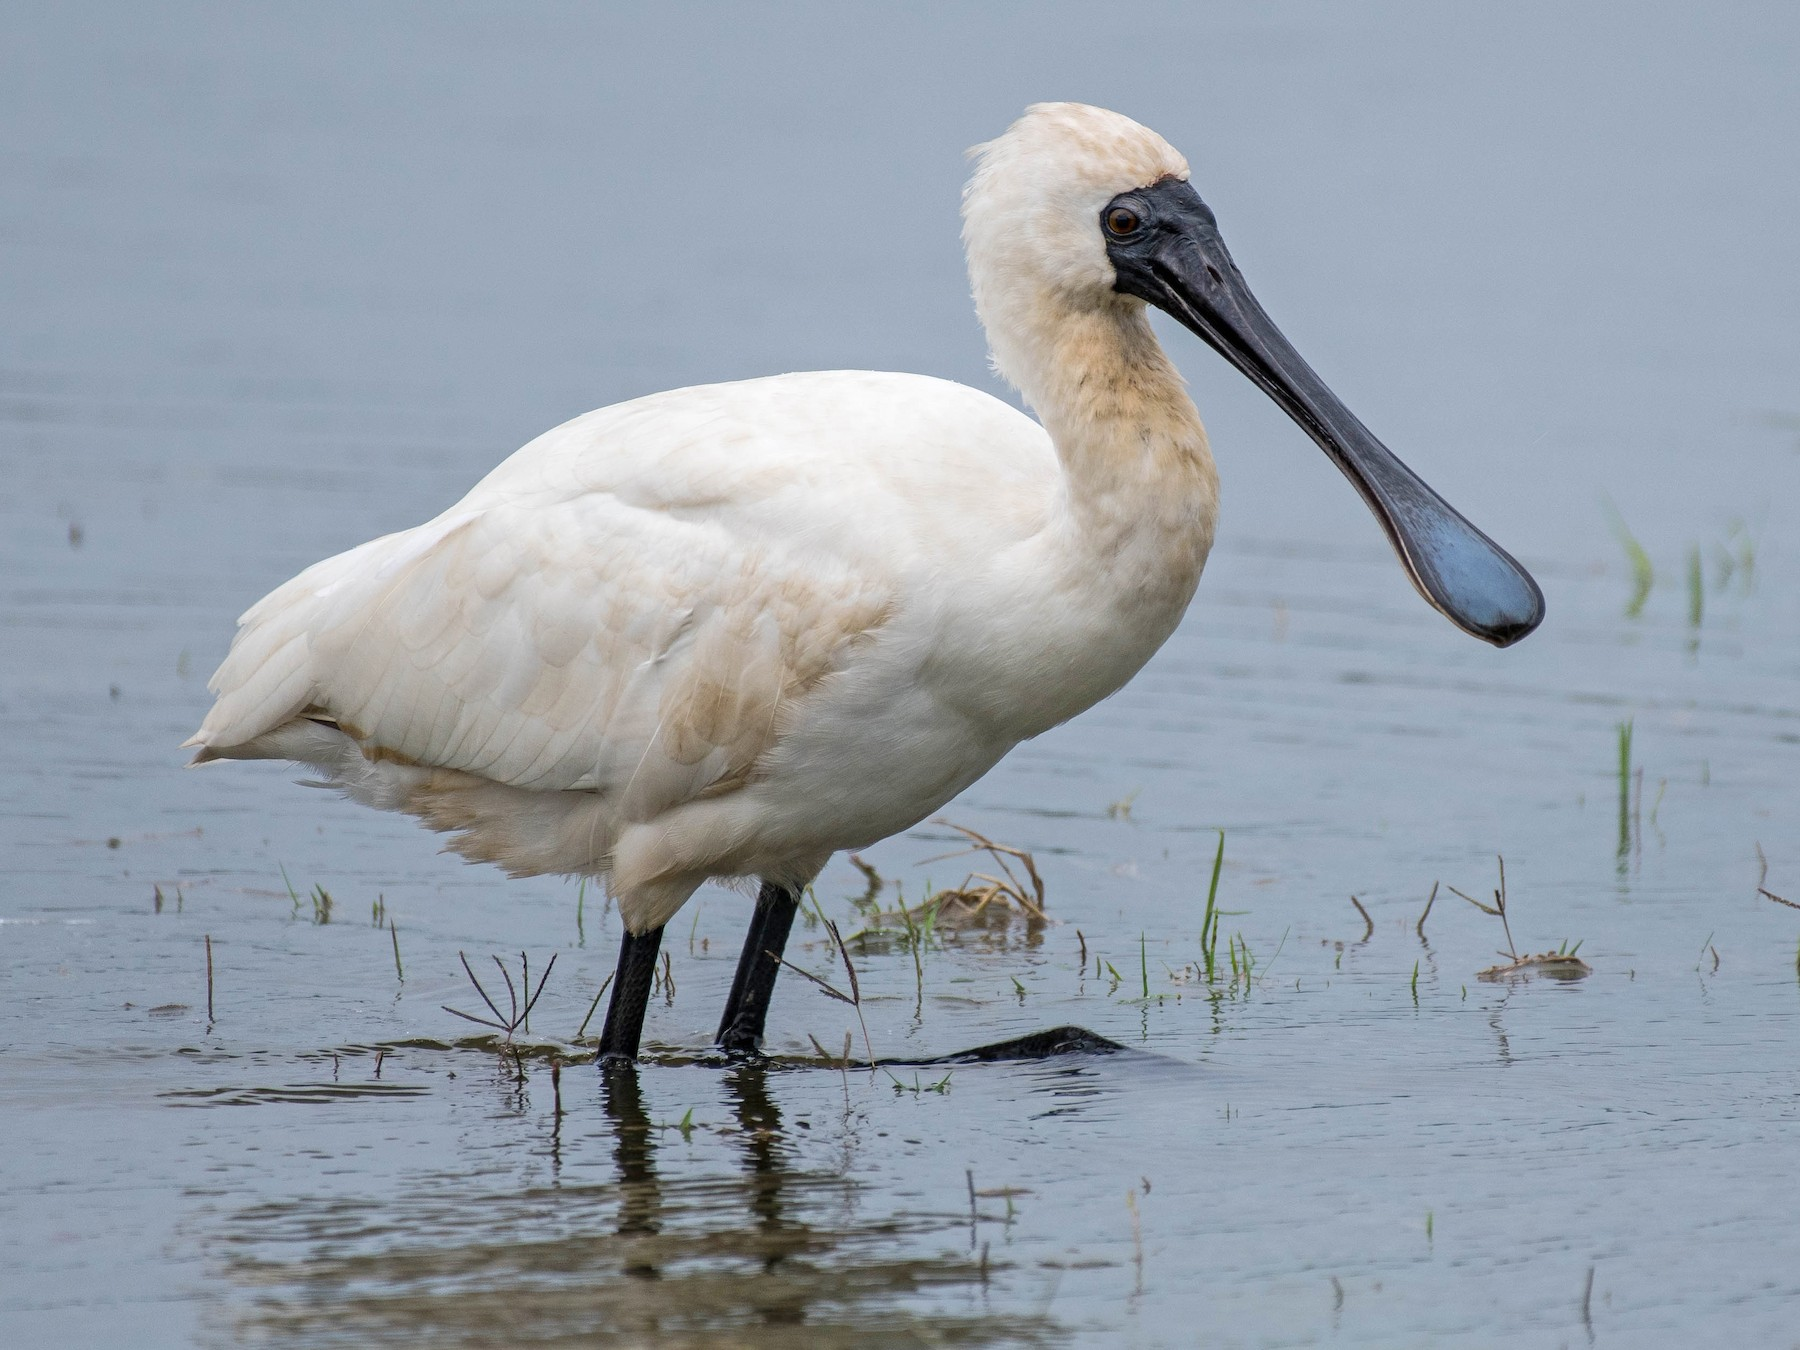 Royal Spoonbill - Terence Alexander